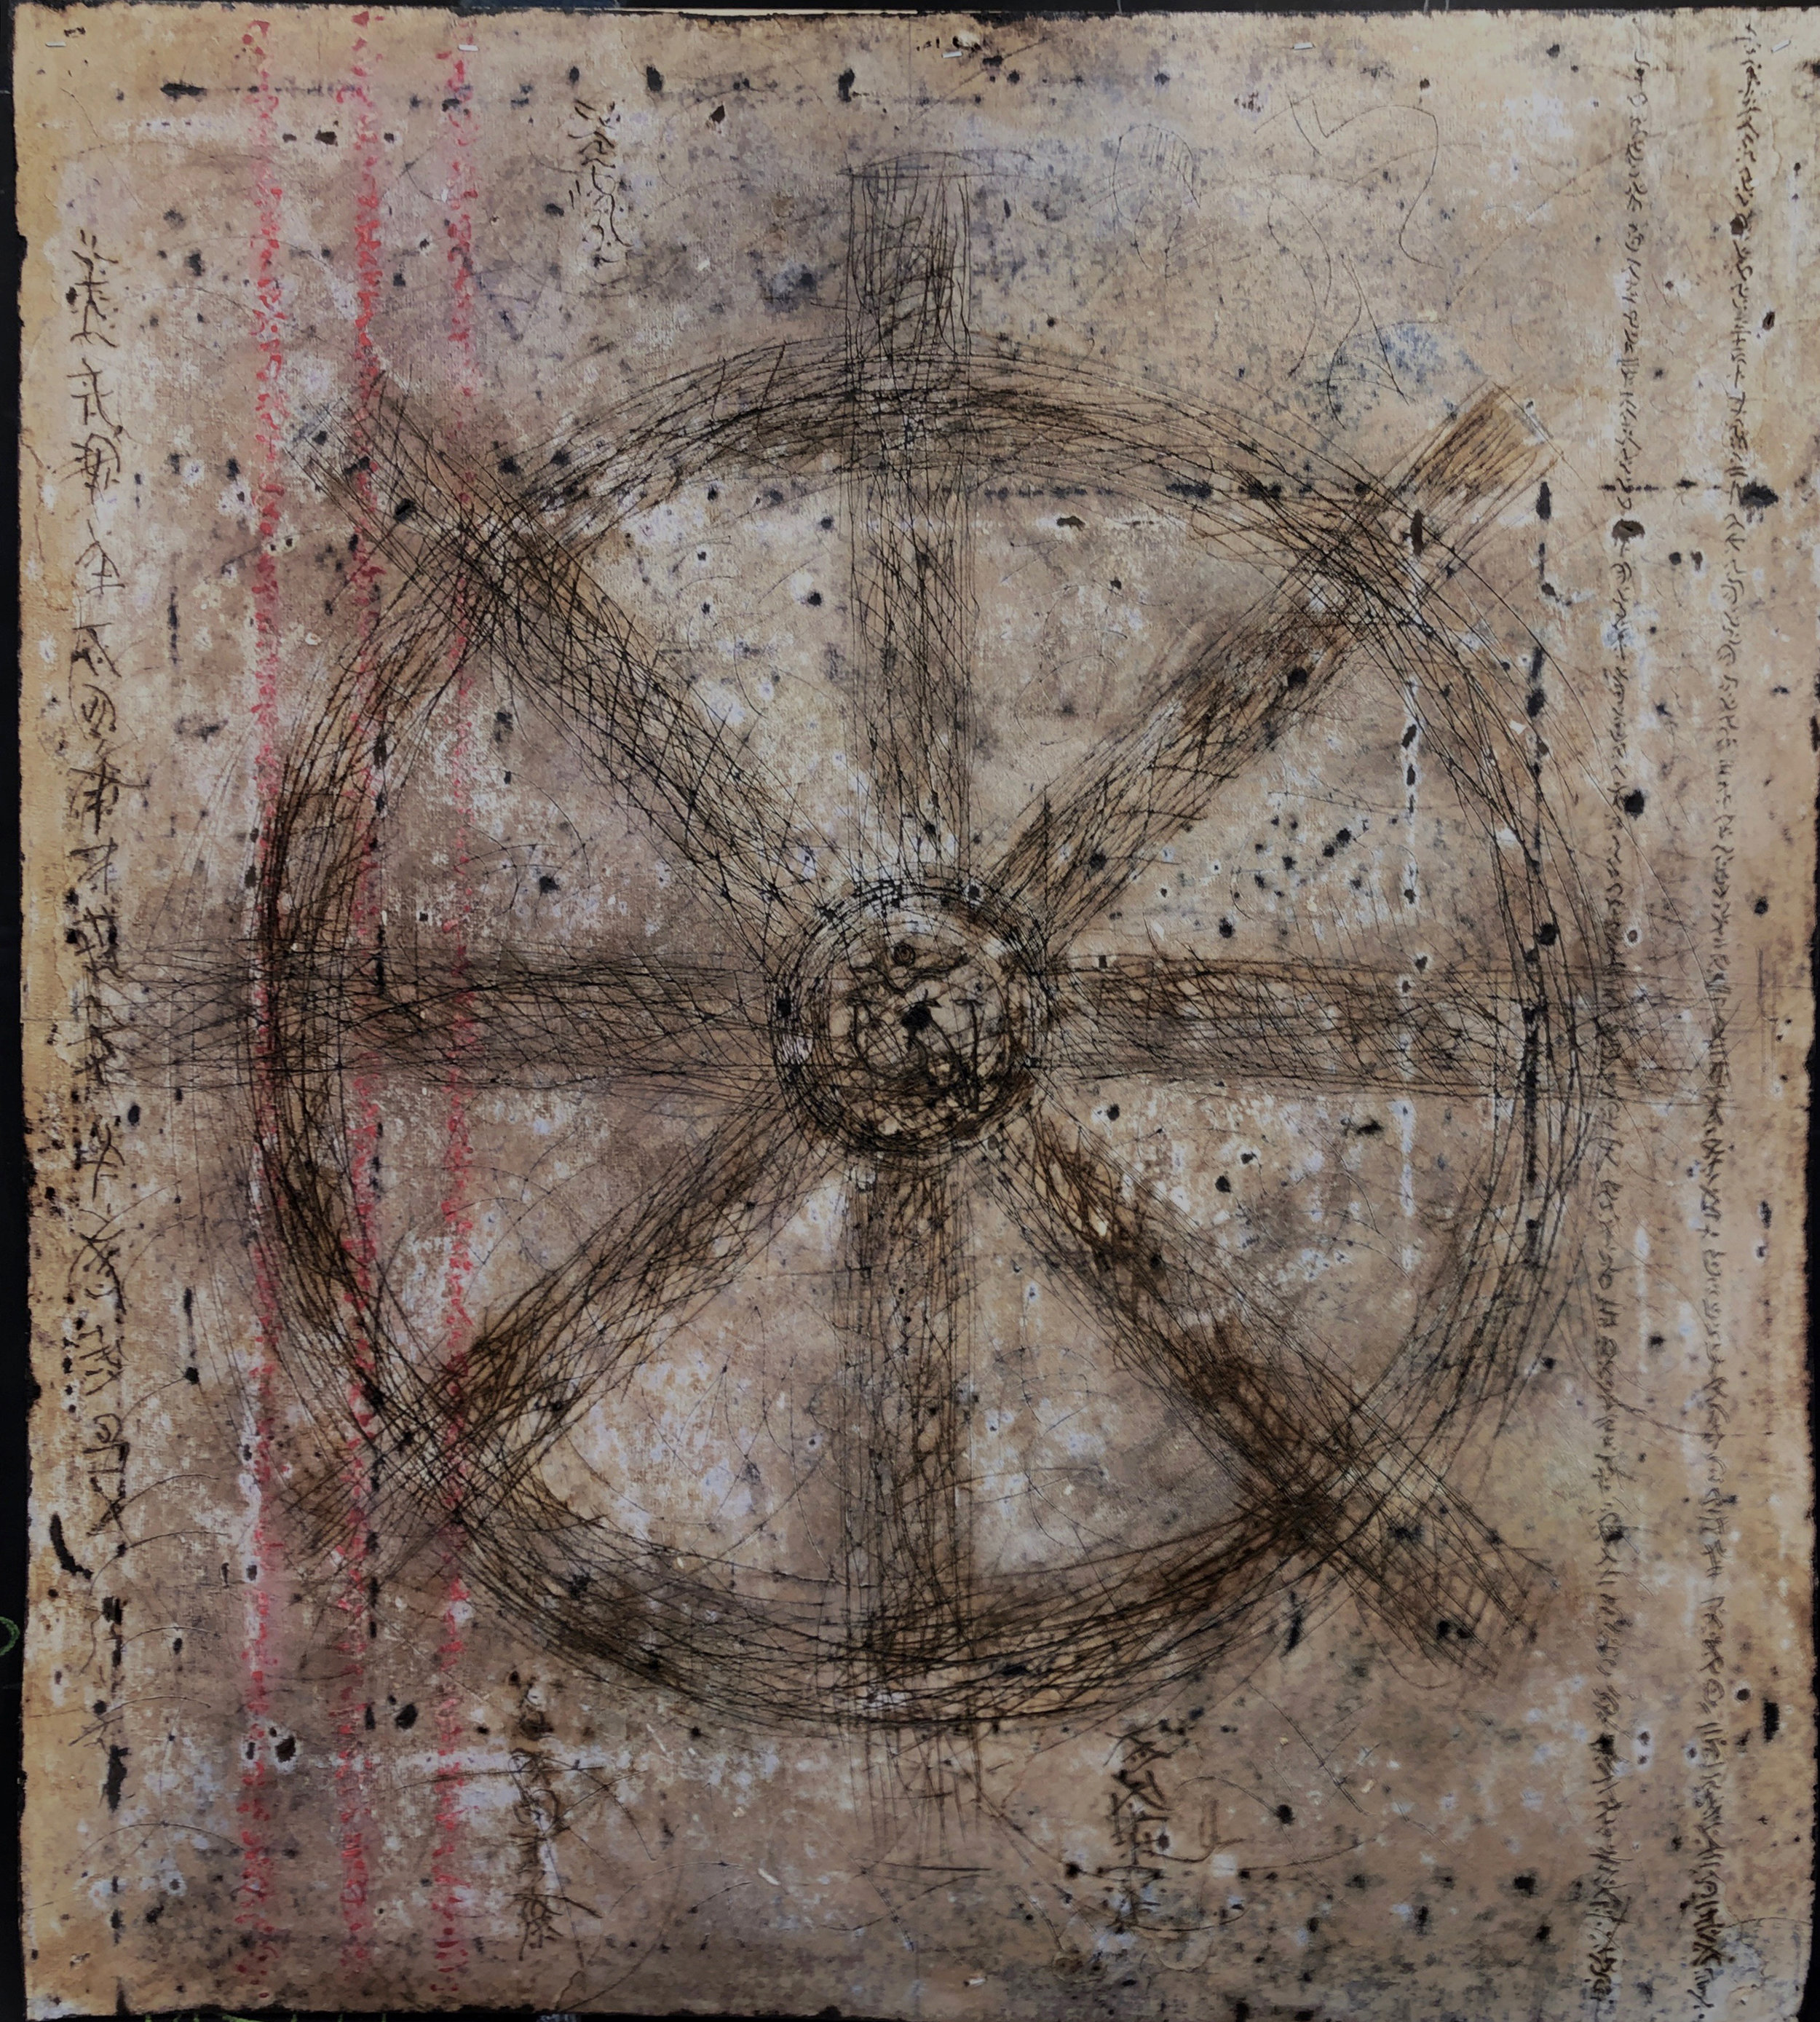 Dharma Wheel   2019 40.75 x 36 inches Acrylic on Tar Paper